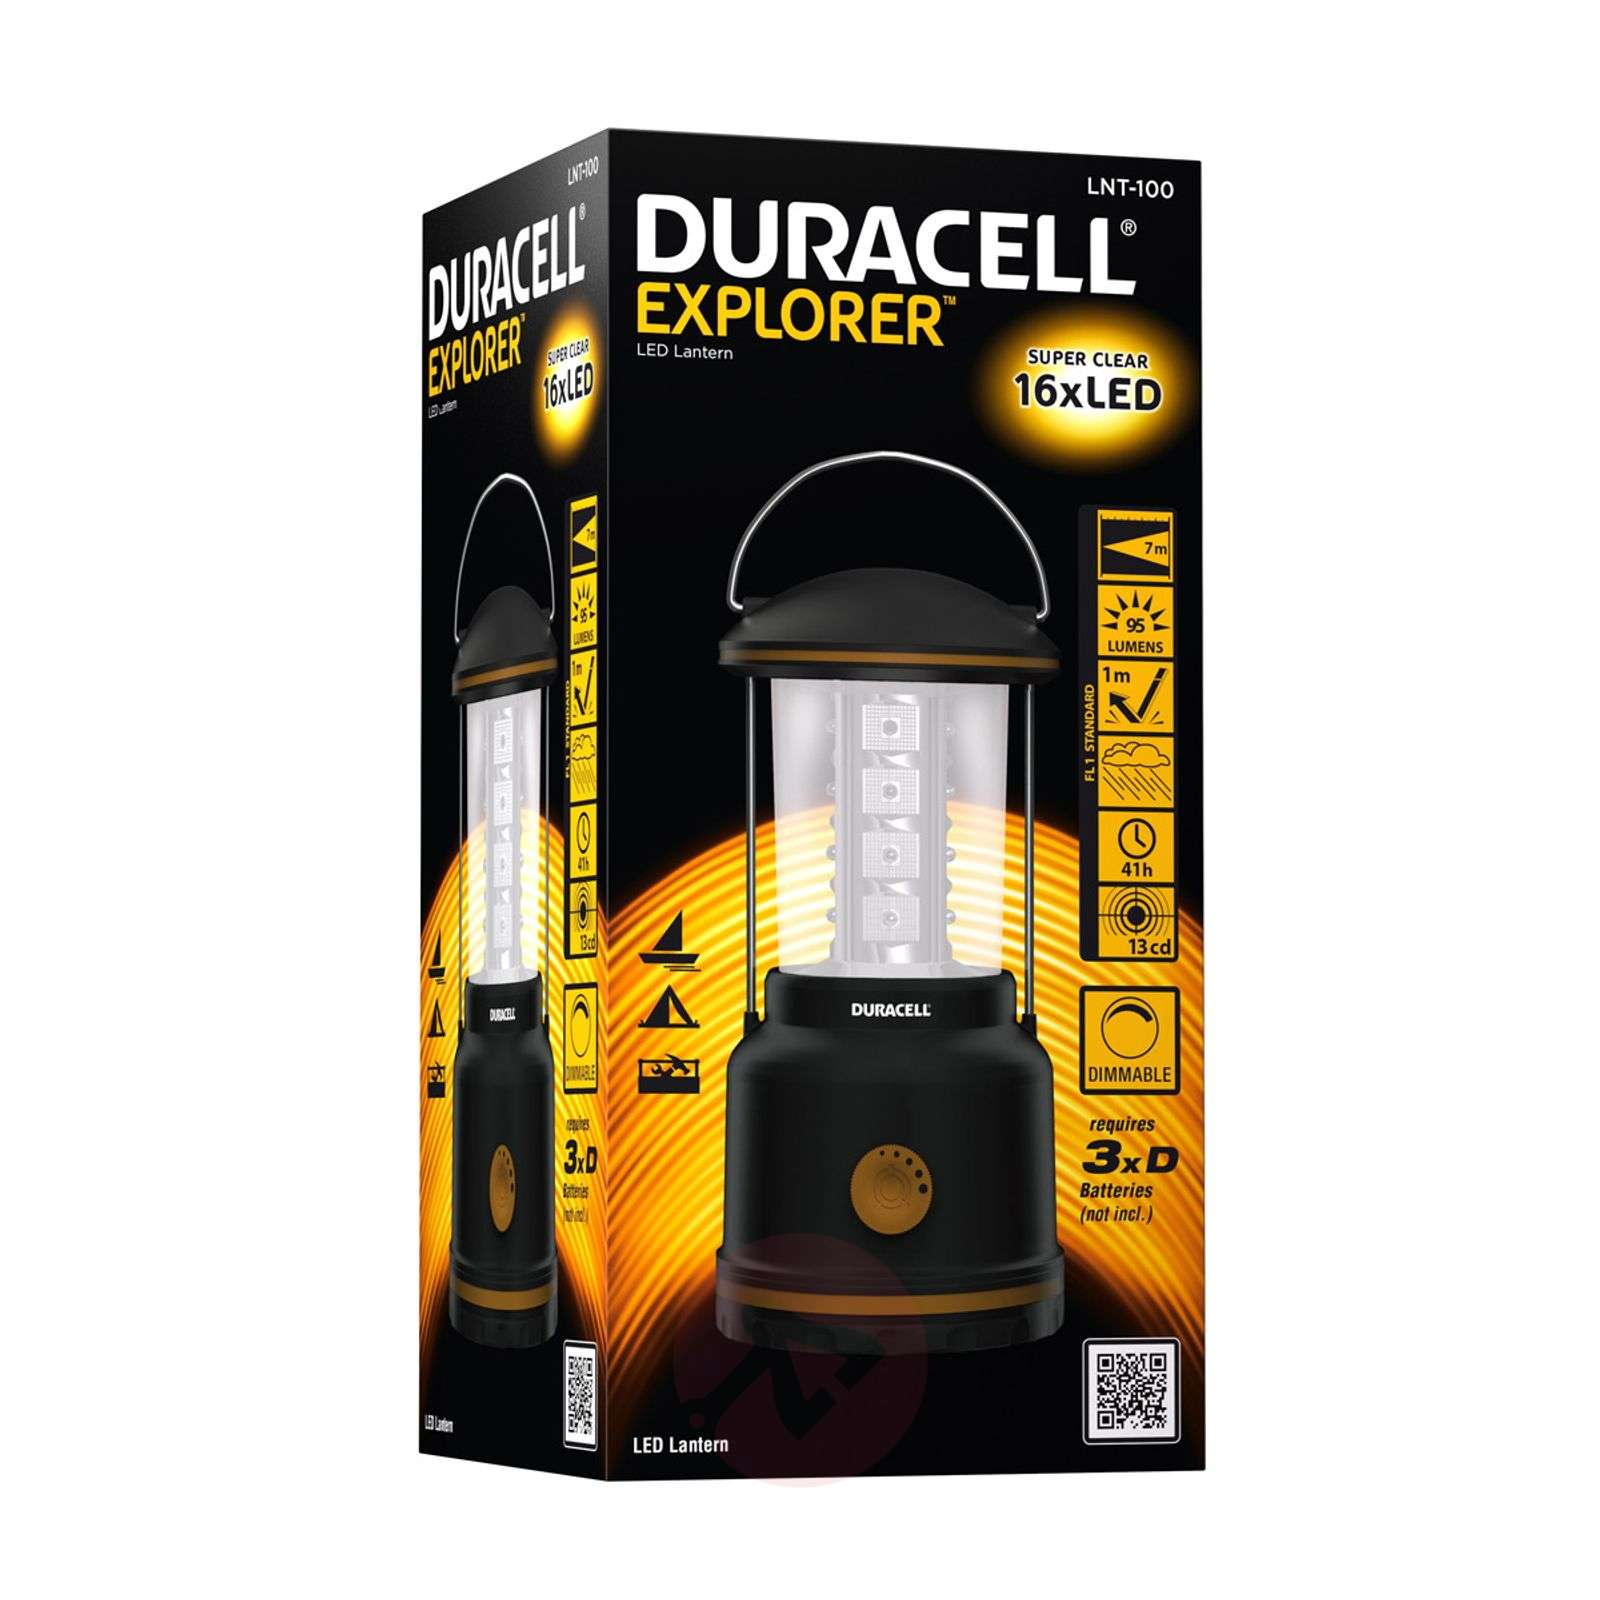 Dimmable LNT-100 LED camping lantern-2610023-01